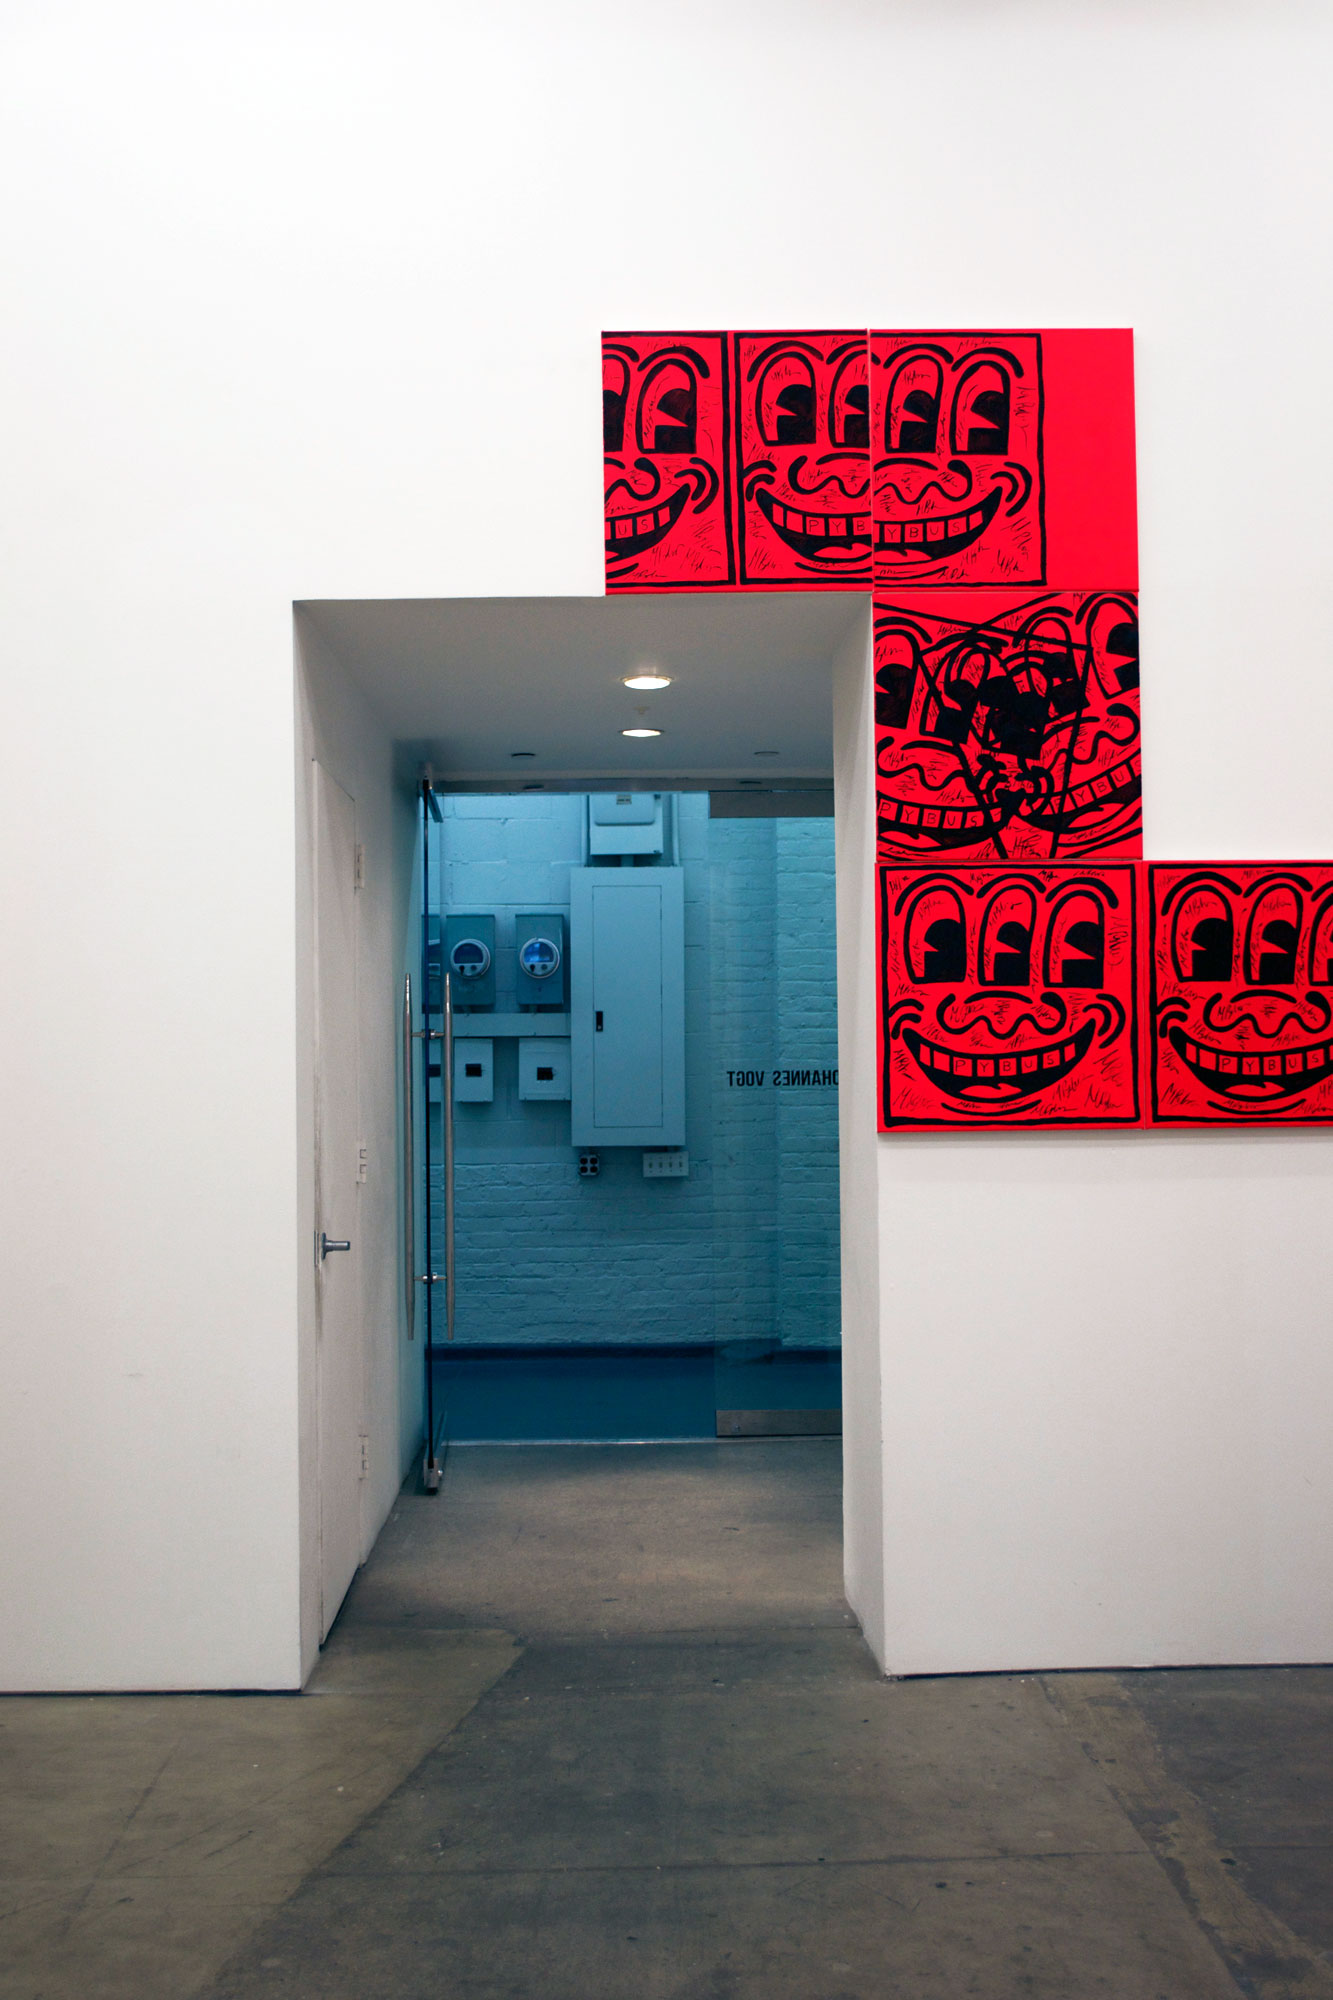 17 Michael Pybus IF IT WORKS, IT'S OBSOLETE @ Johannes Vogt 15 Oct - 14 Nov 2015